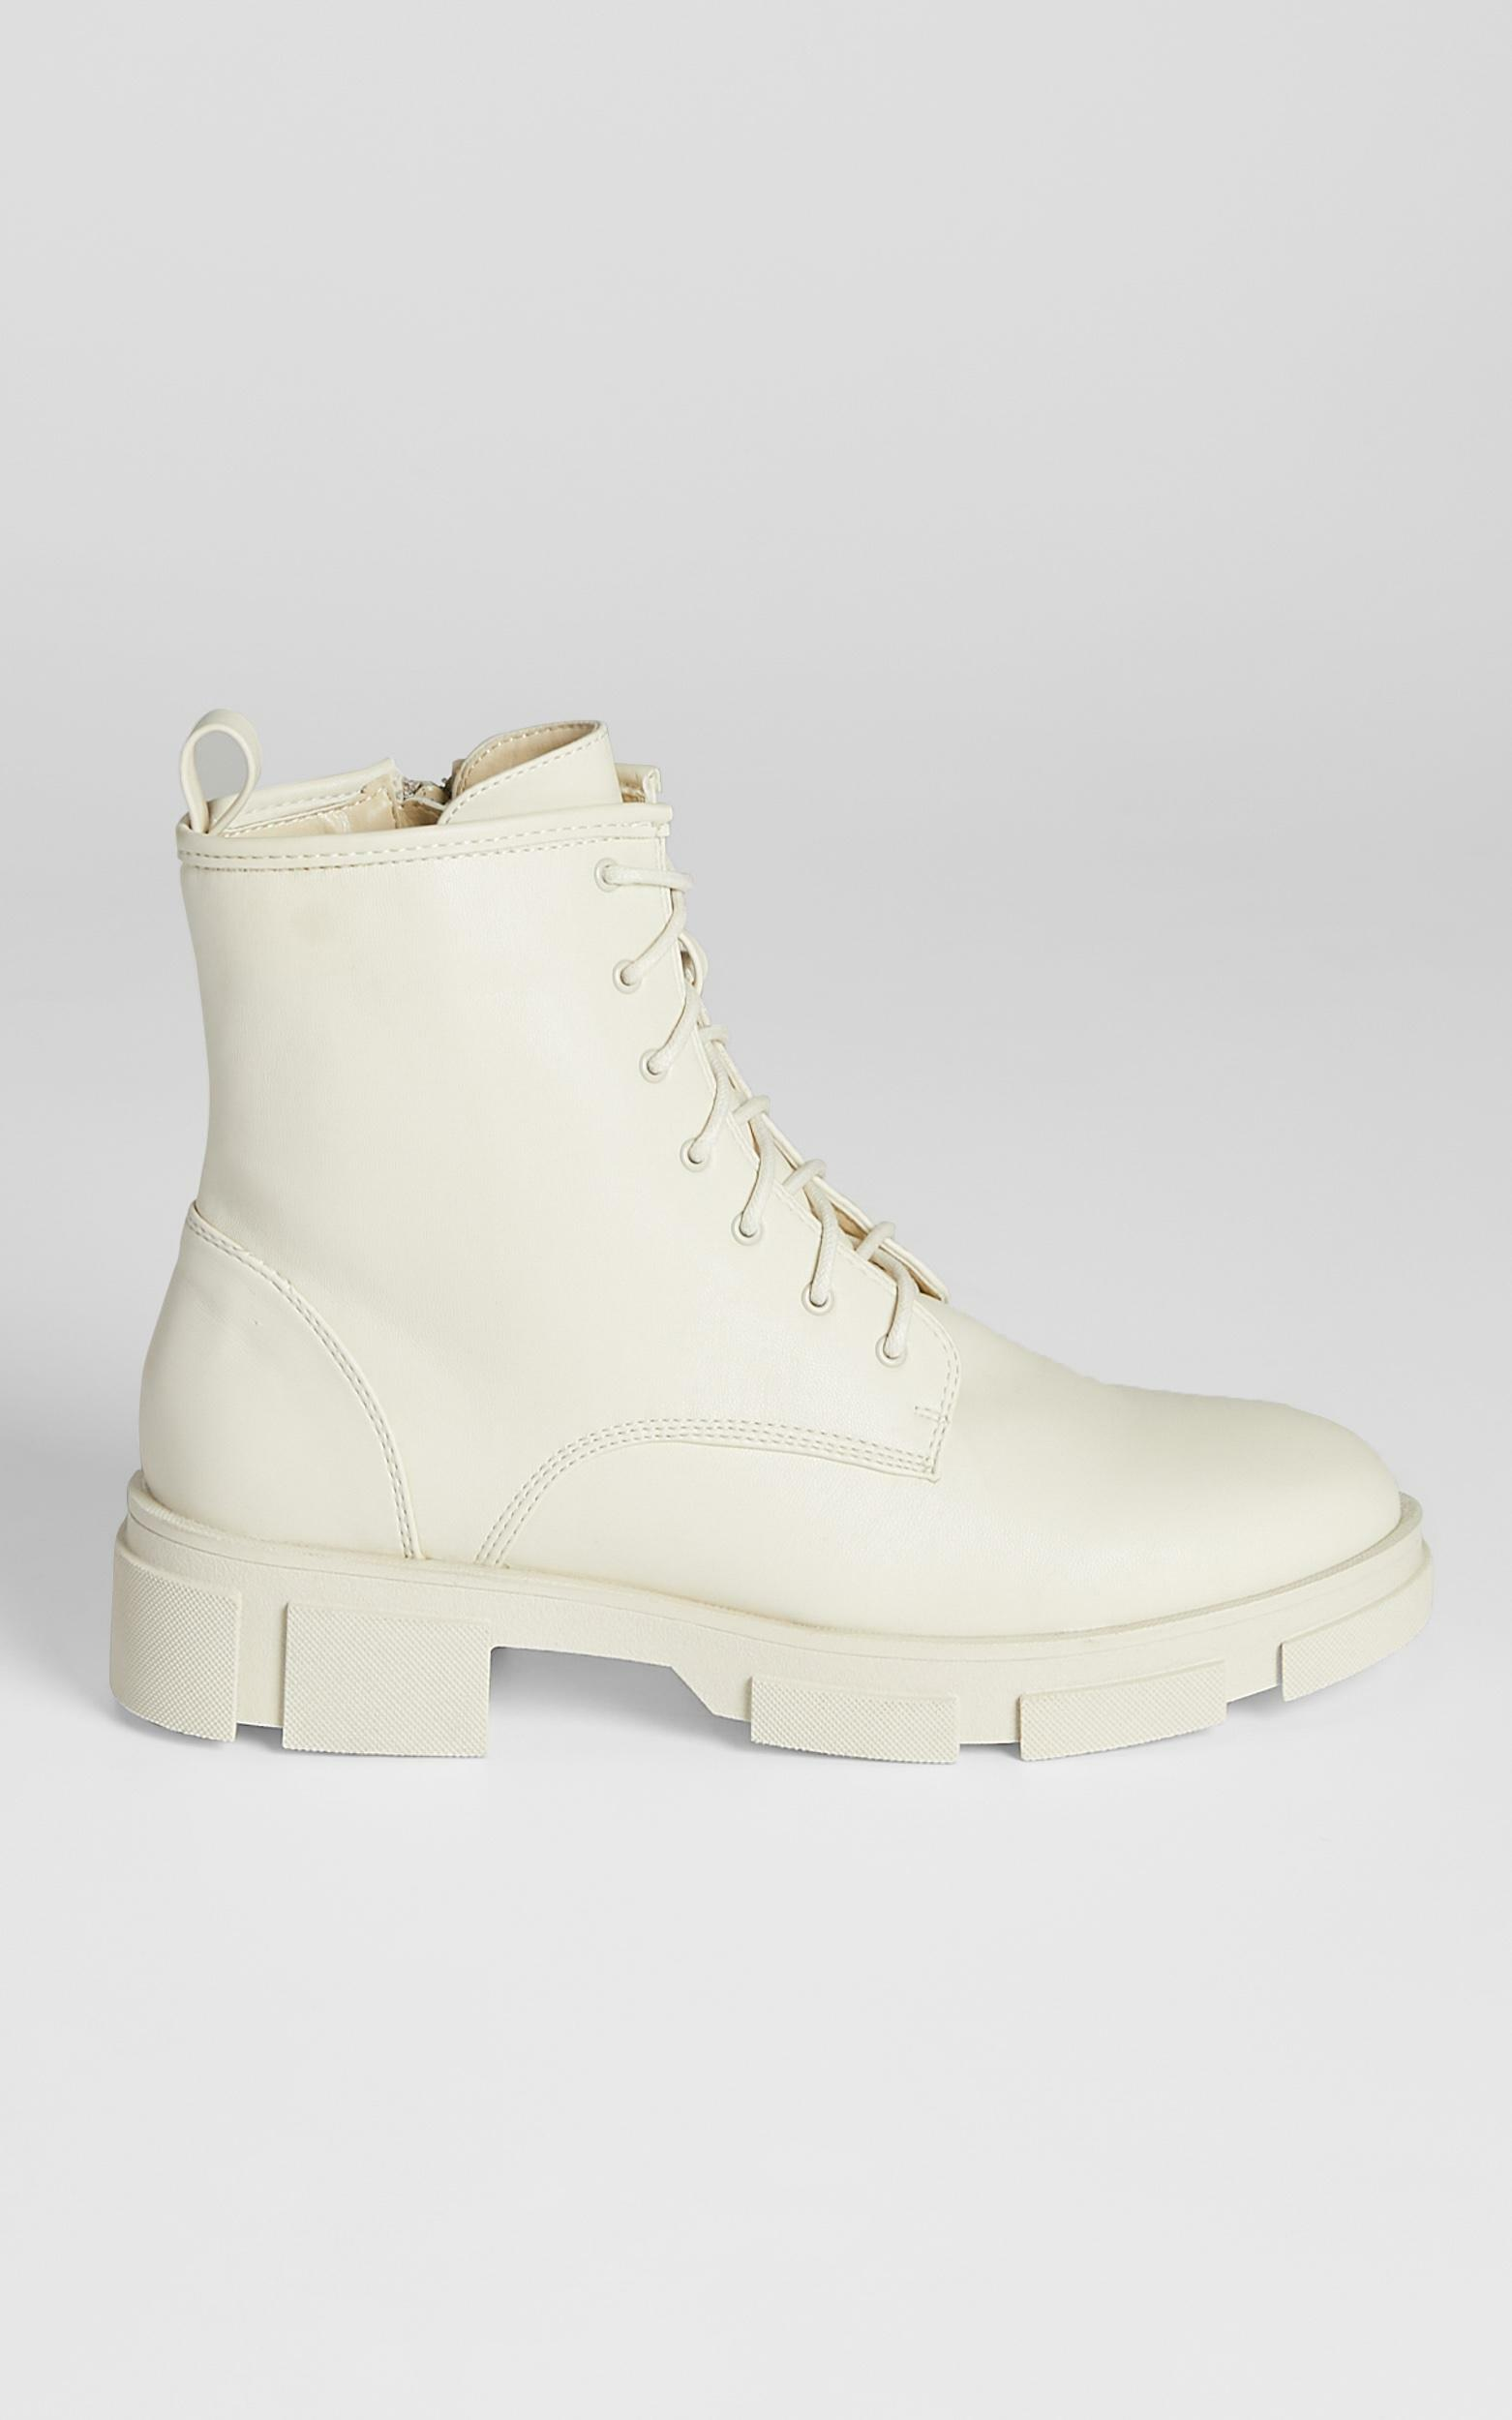 Therapy - Nadia Boots in Cream - 5, Cream, hi-res image number null